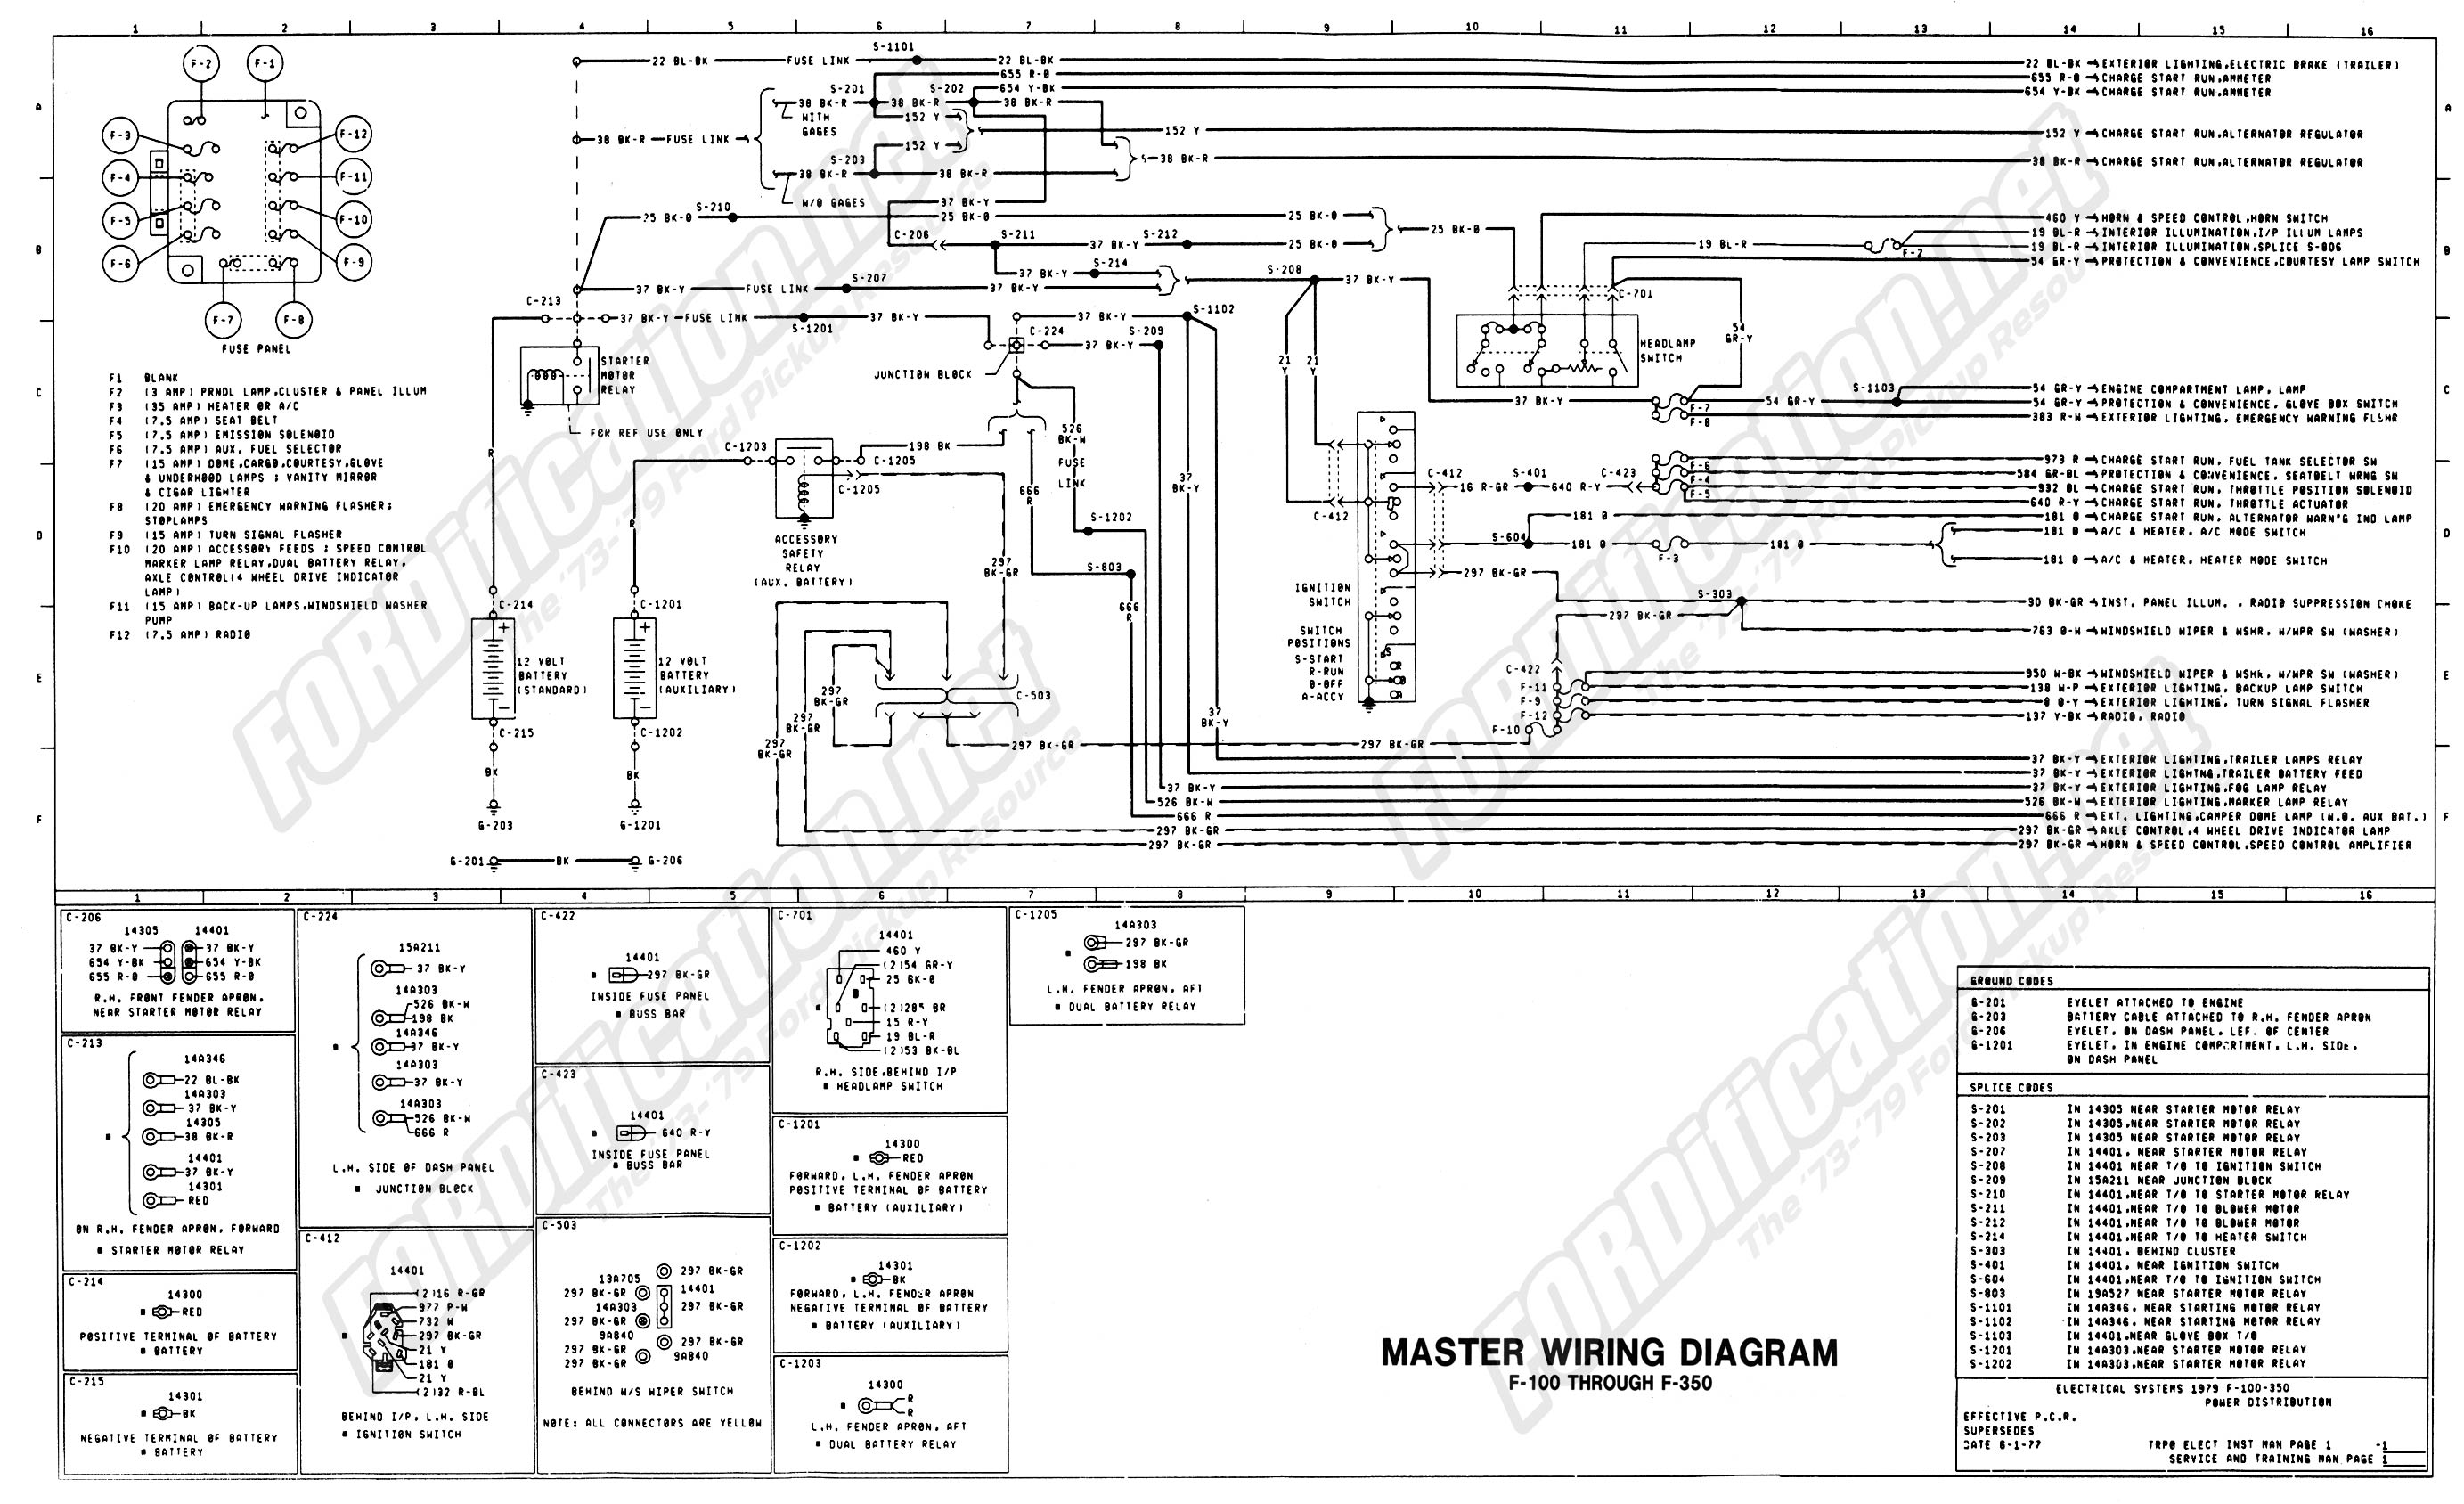 wiring_79master_1of9 1973 1979 ford truck wiring diagrams & schematics fordification net 1979 ford bronco fuse box diagram at soozxer.org